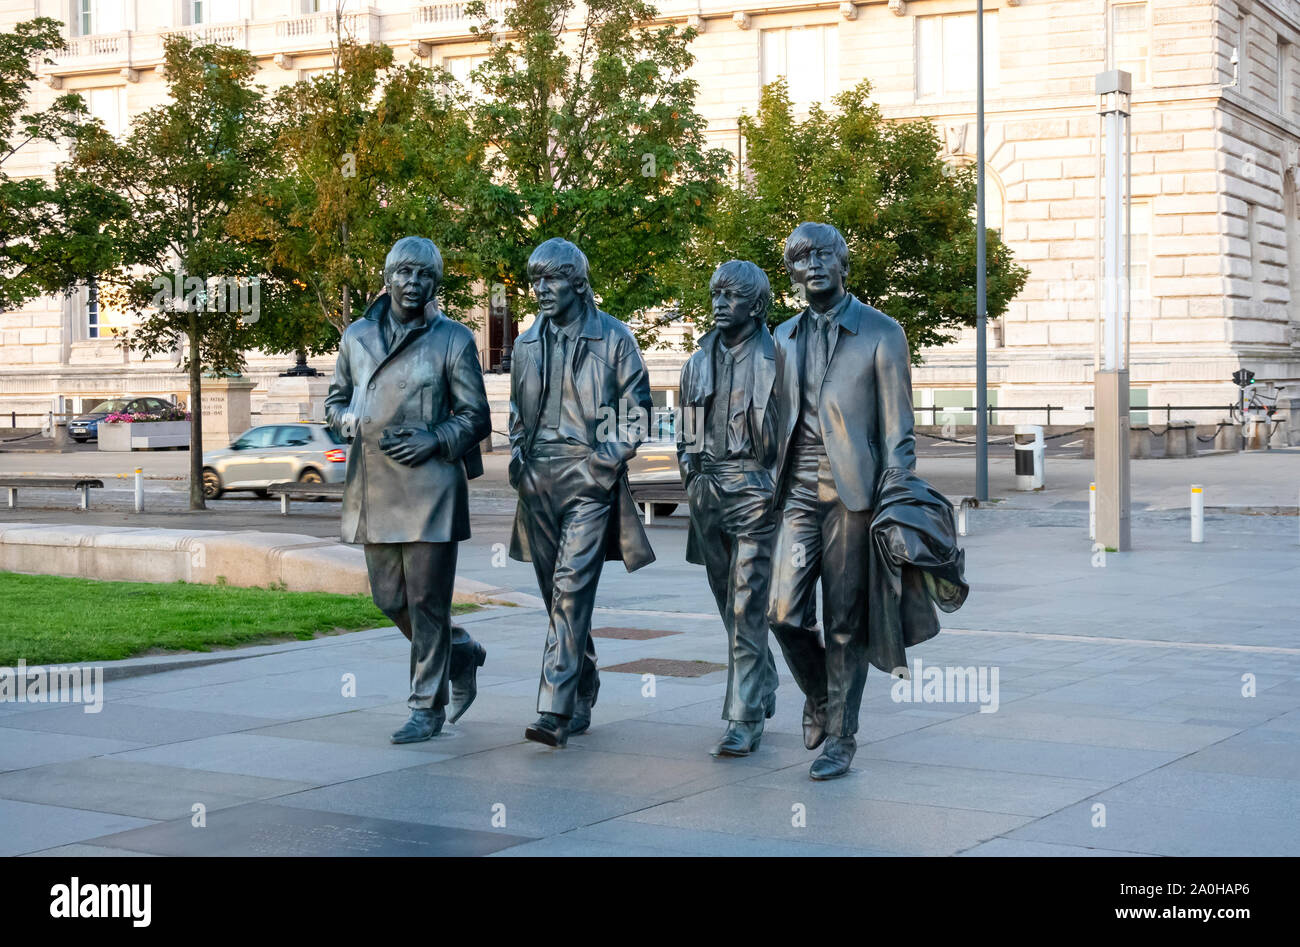 bronze-walking-statutes-of-the-beatles-b